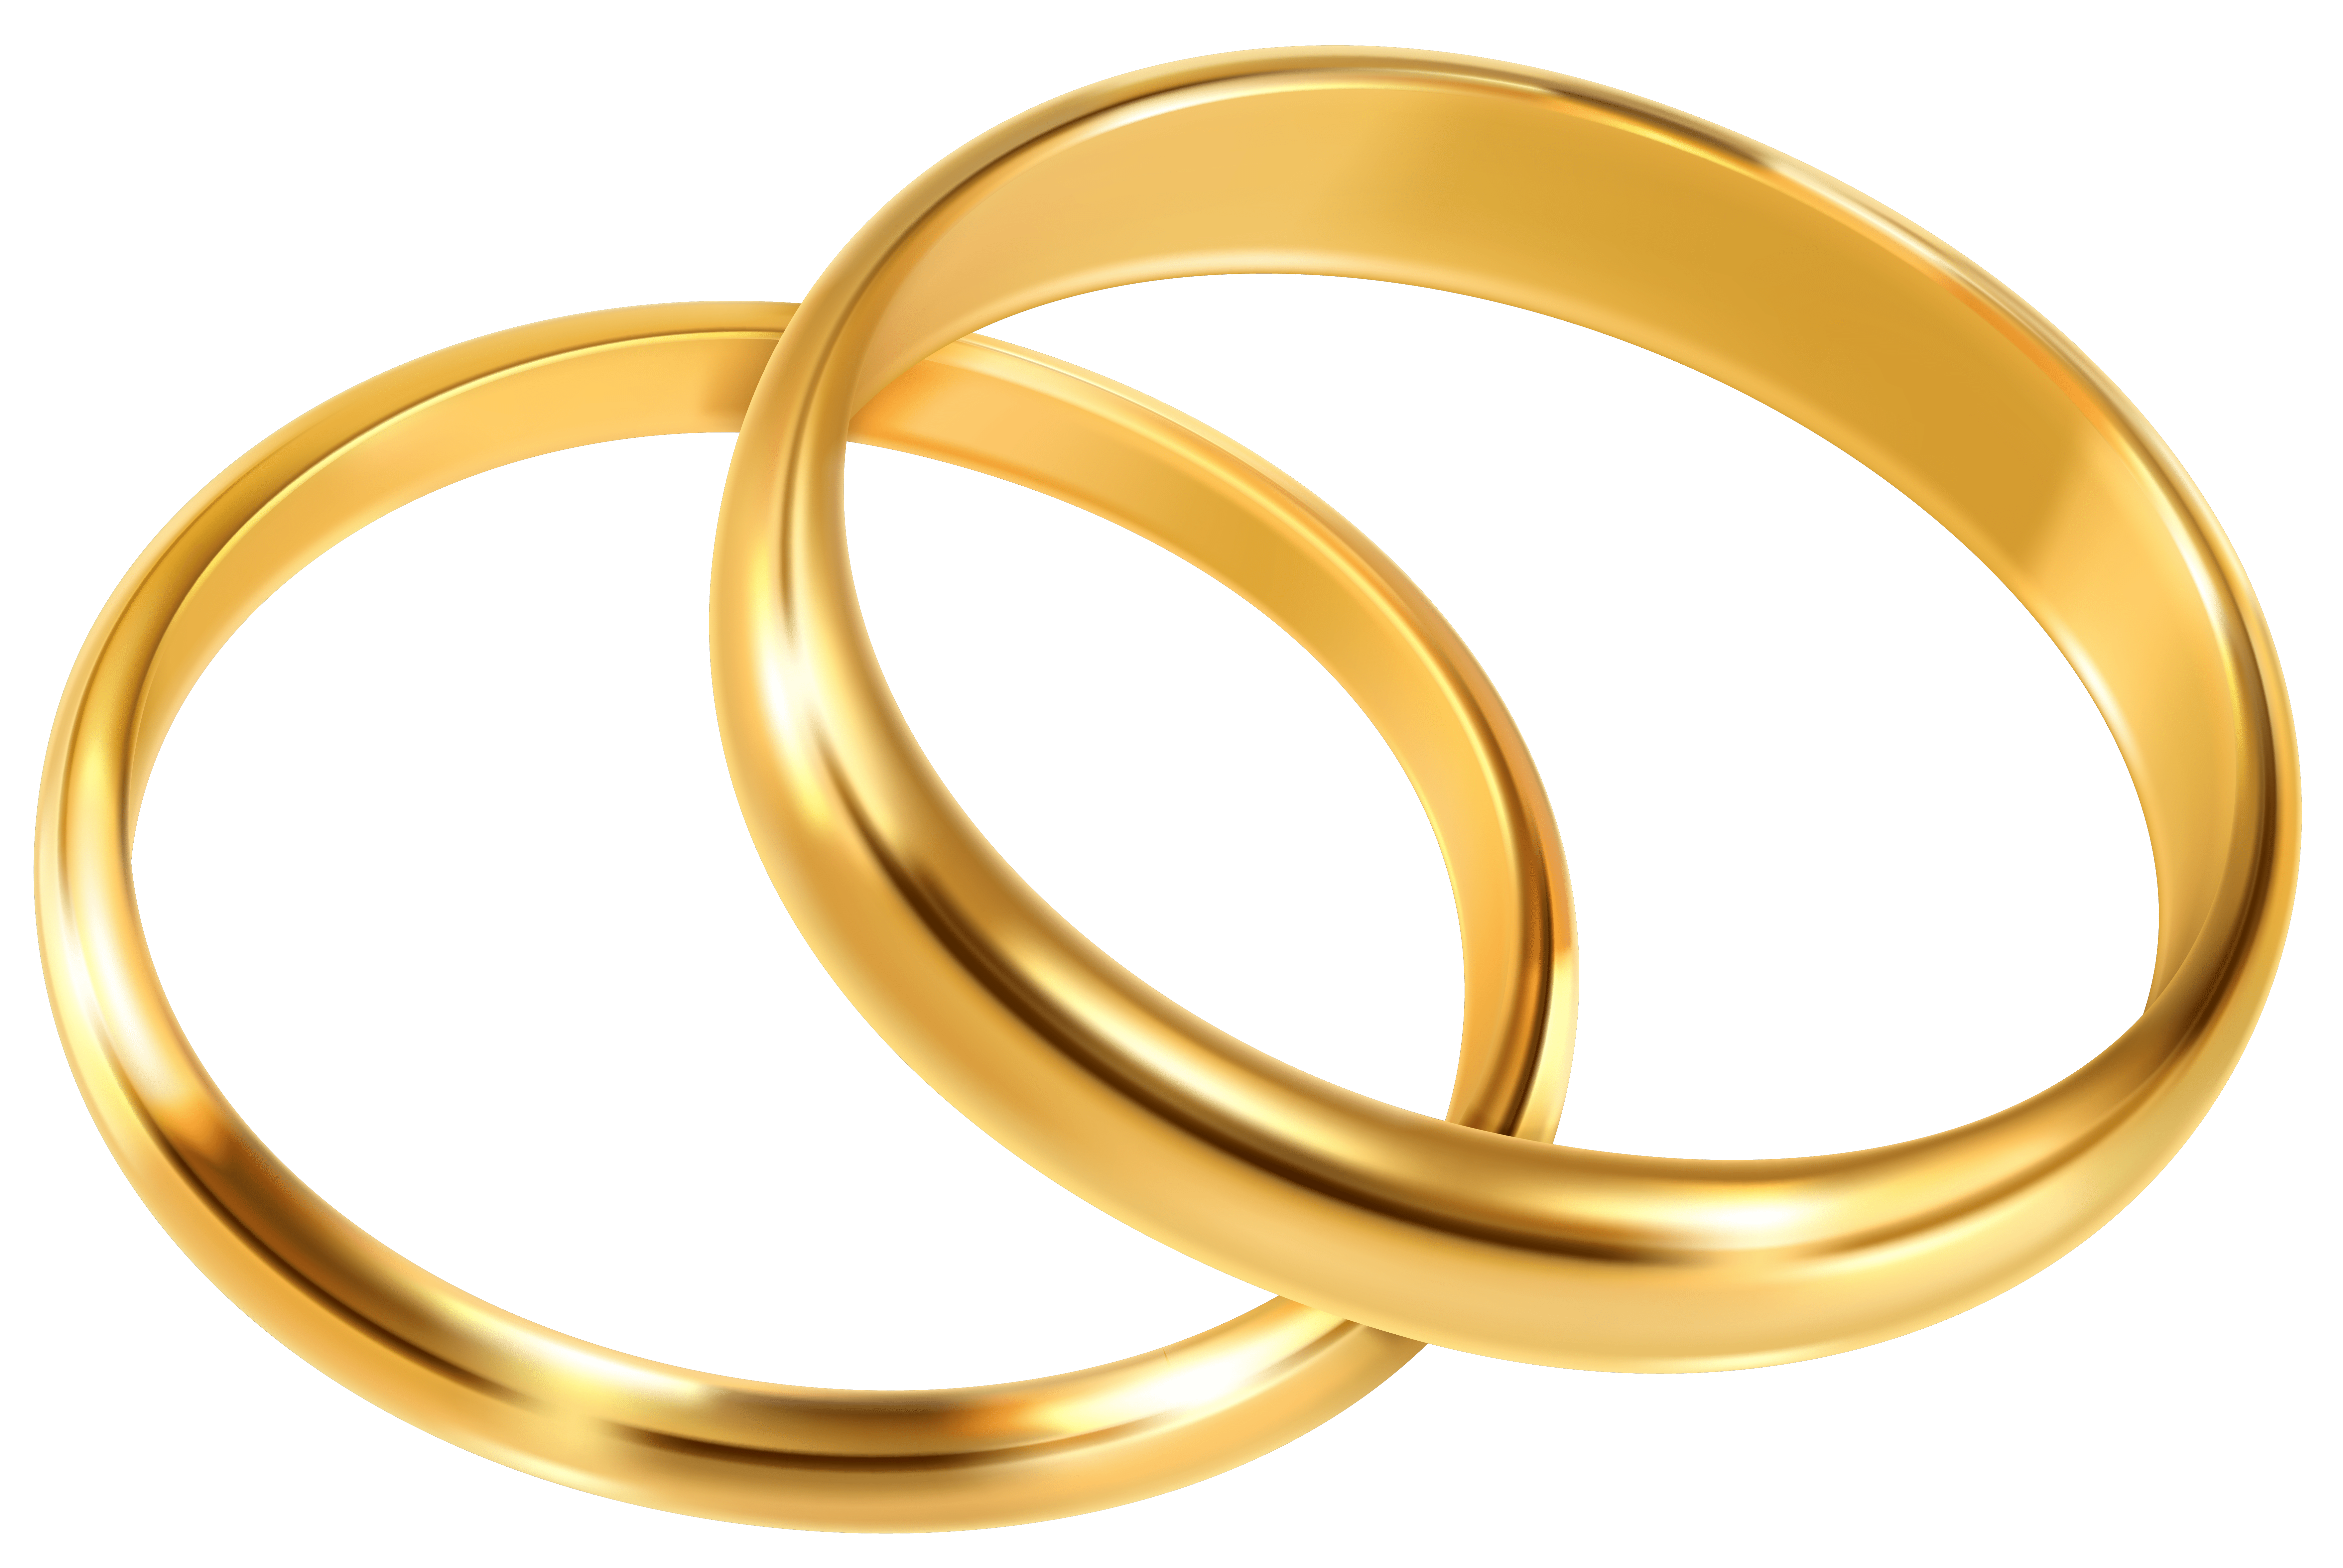 Double wedding rings clipart graphic stock Interlocking Wedding Rings Clipart | Free download best Interlocking ... graphic stock